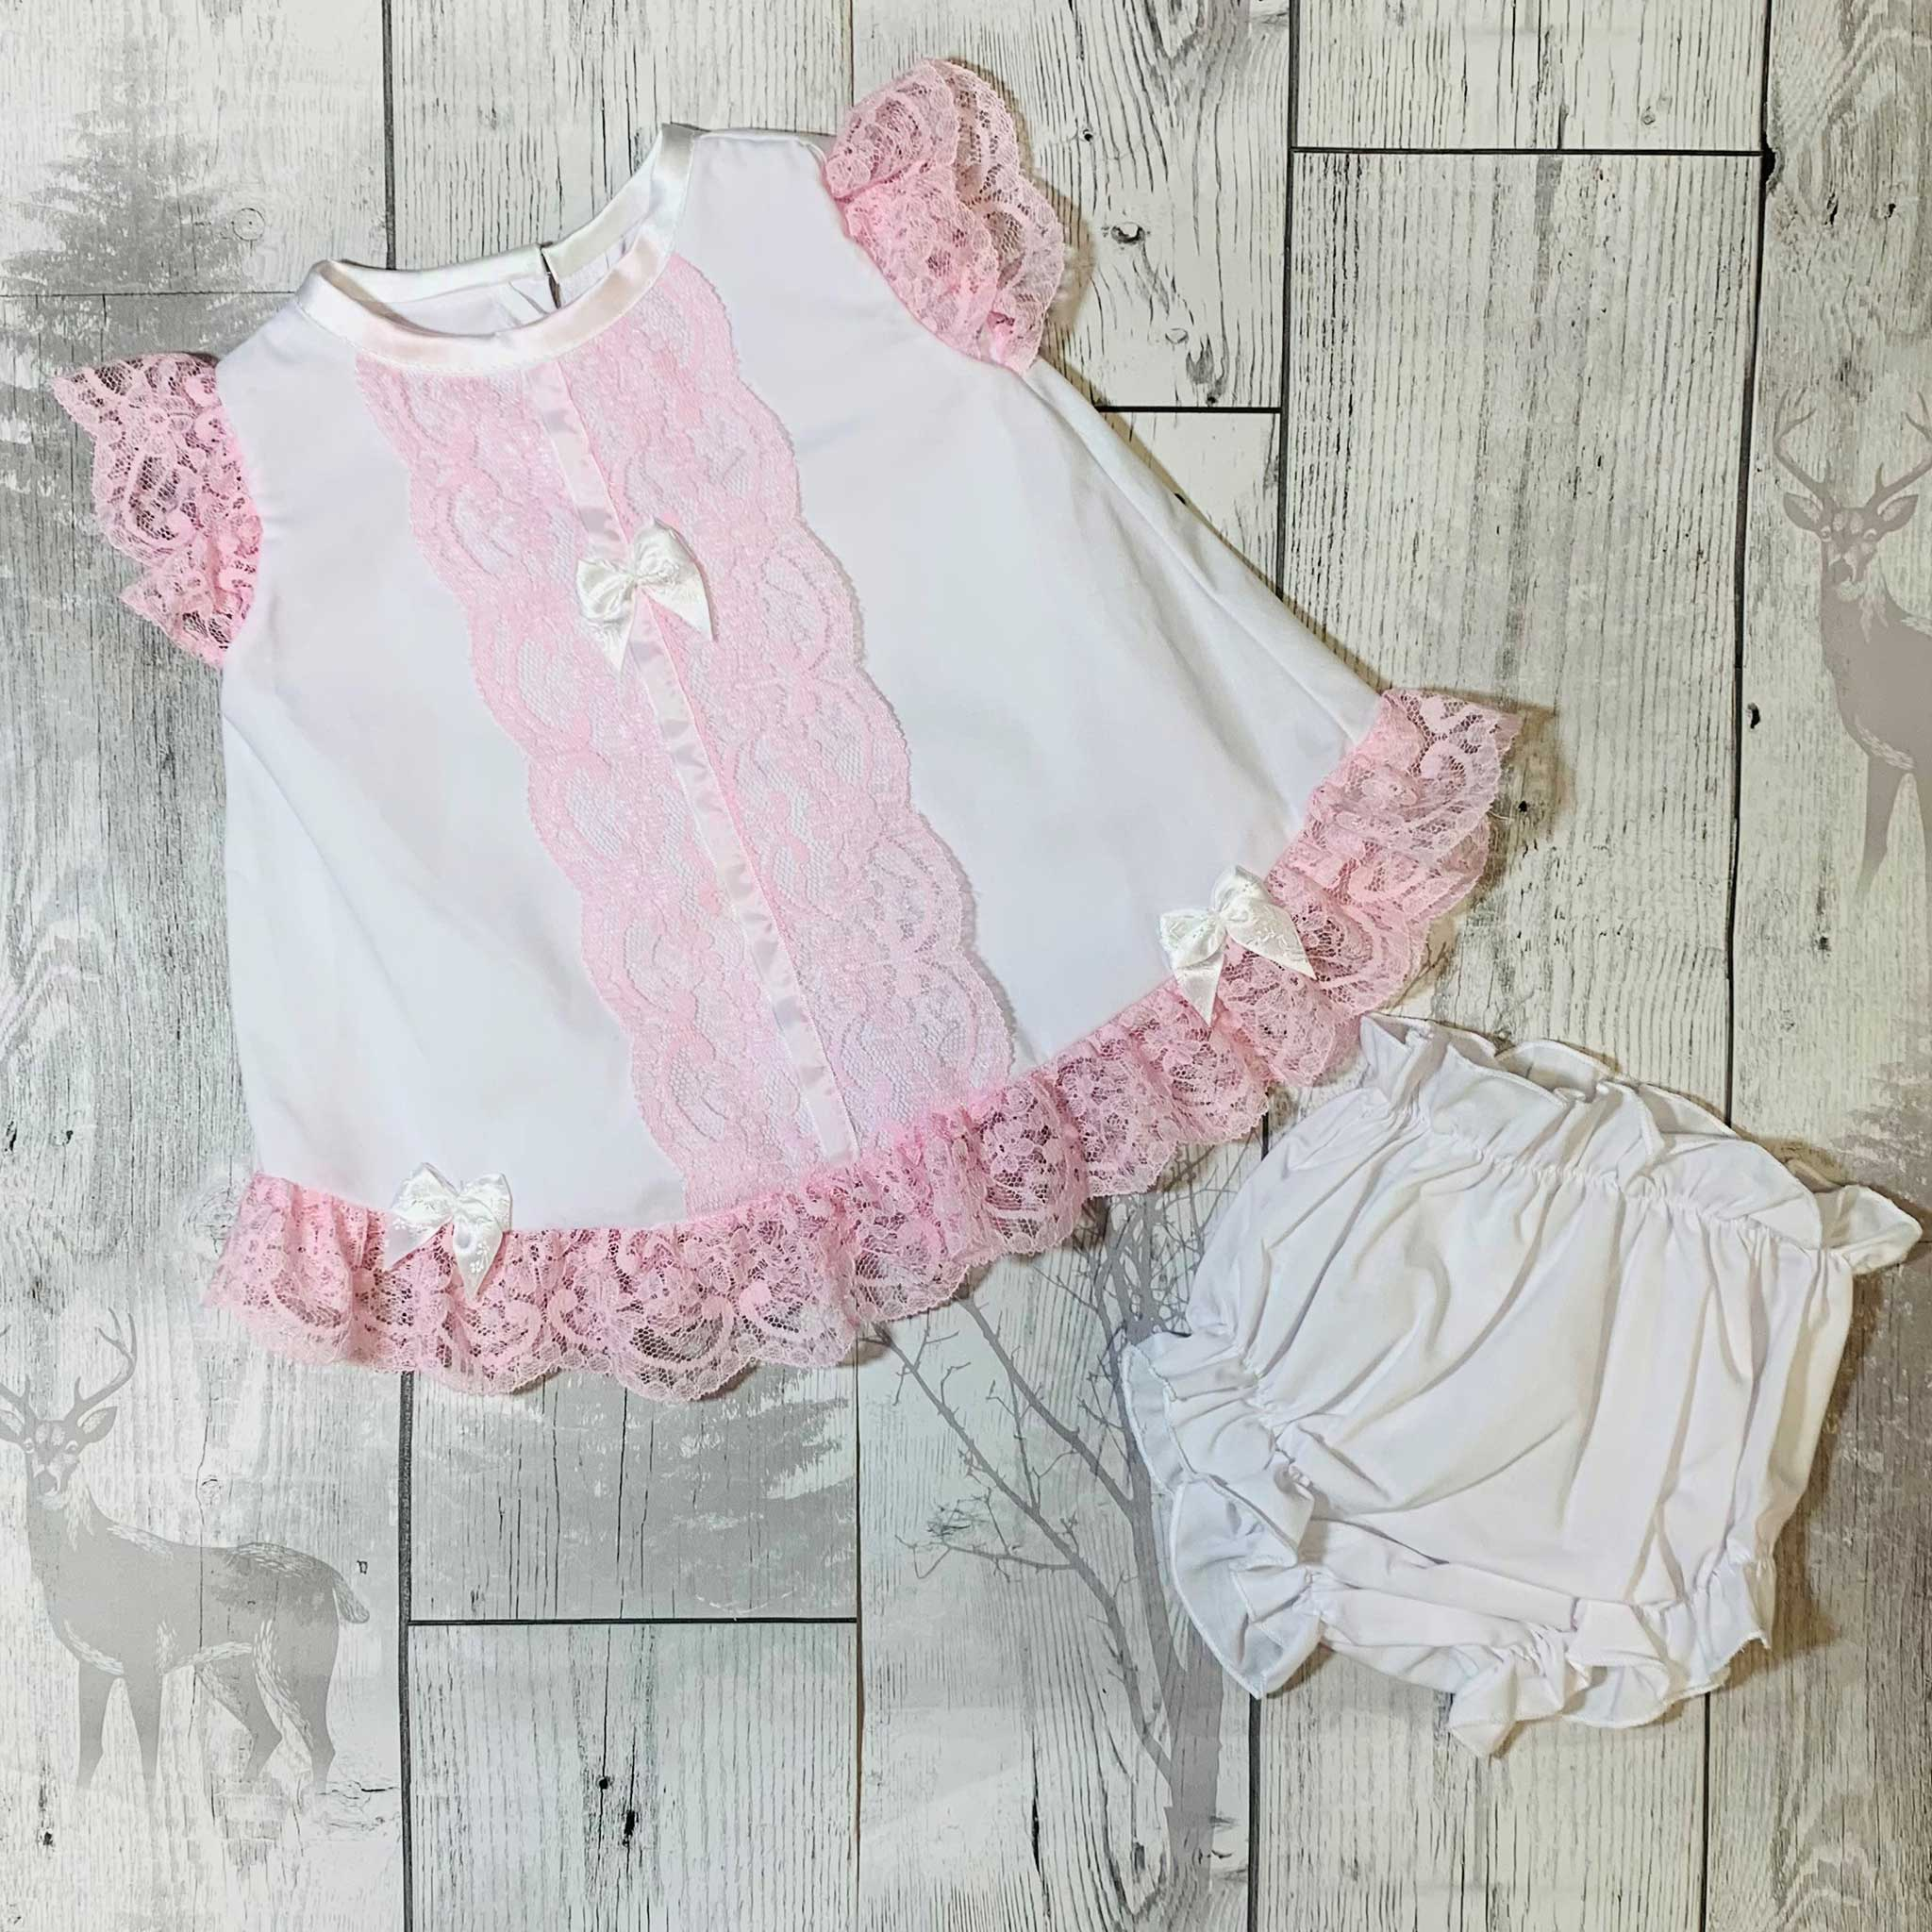 Baby Girl Dress and Knickers Outfit - White / Pink